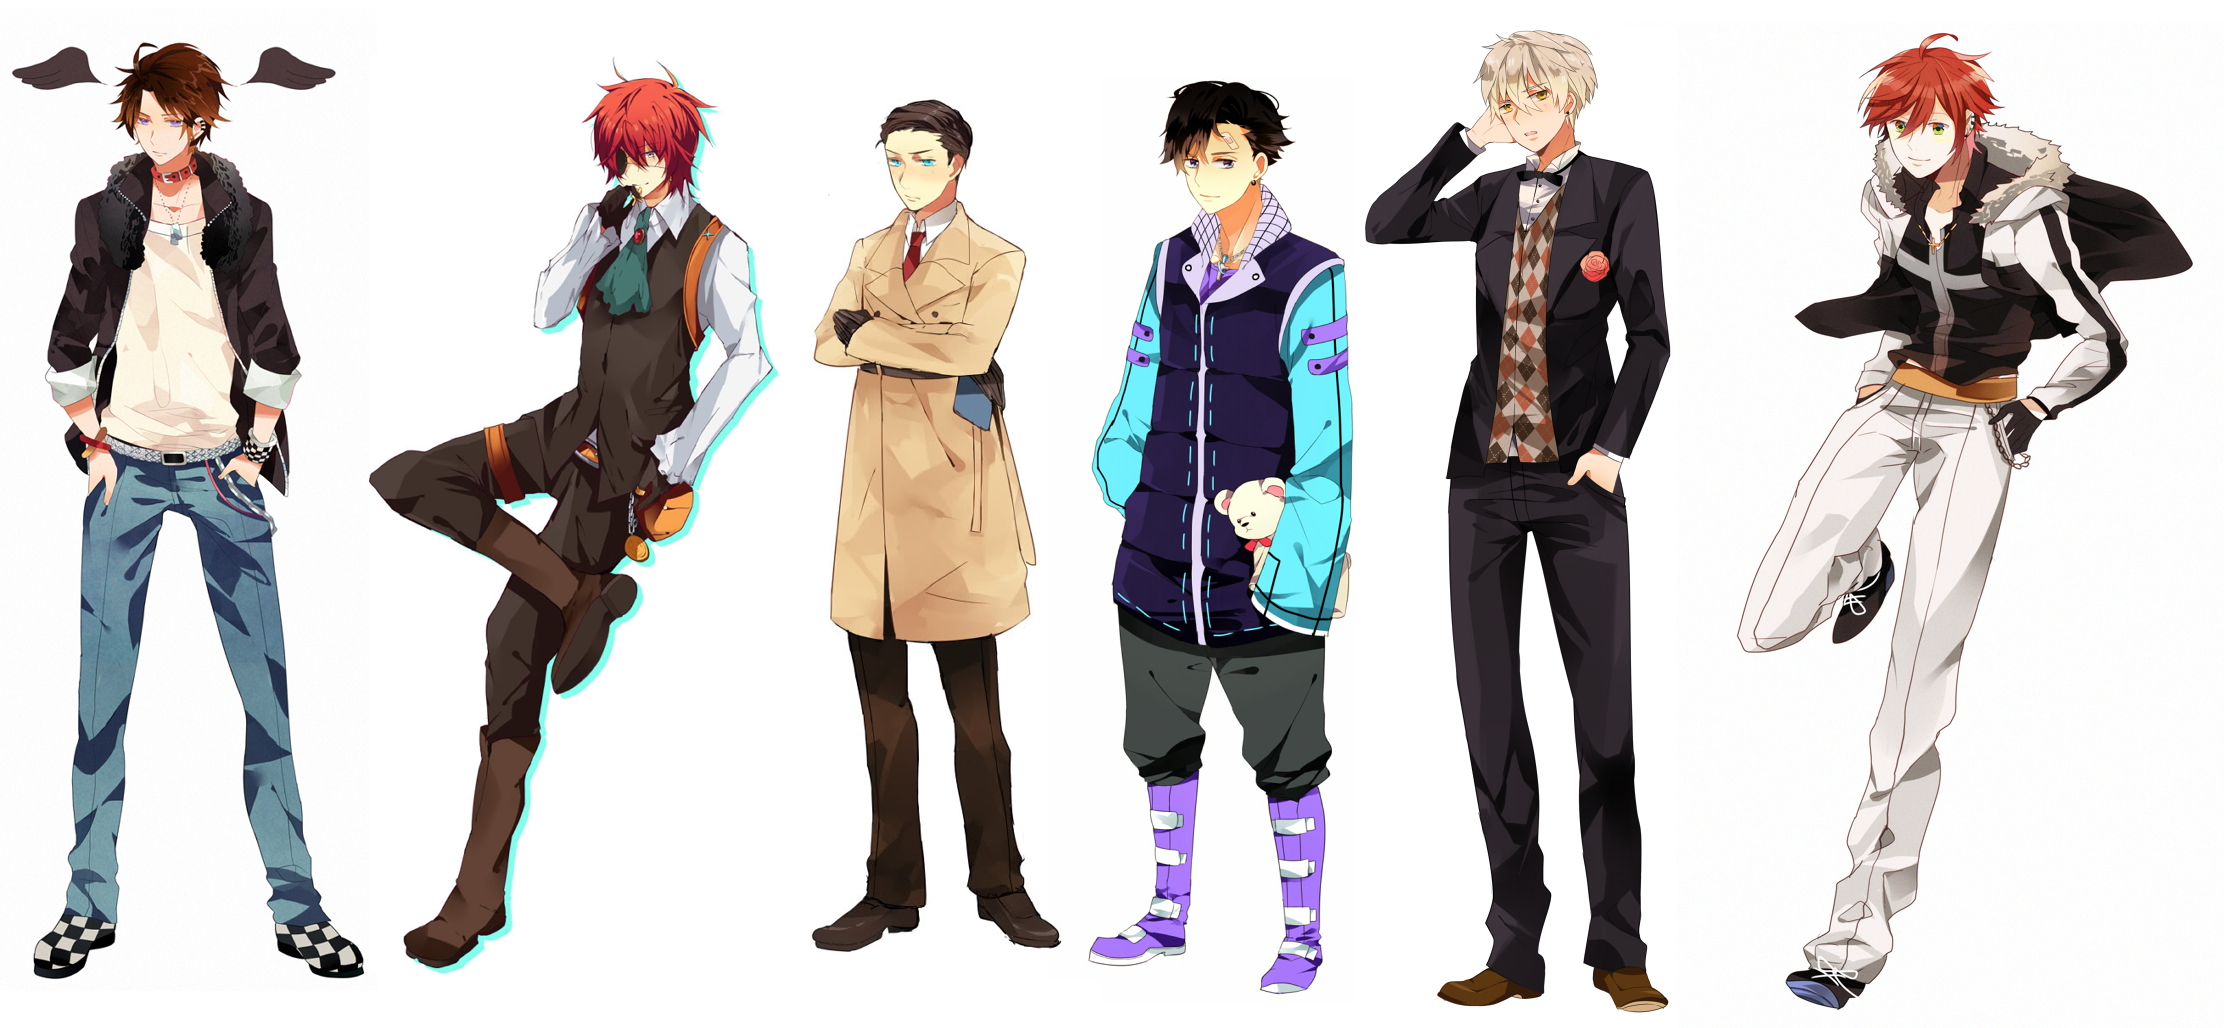 Image Result For Male Anime Outfits Anime Kleidung Kleidung Zeichnen Kleidung